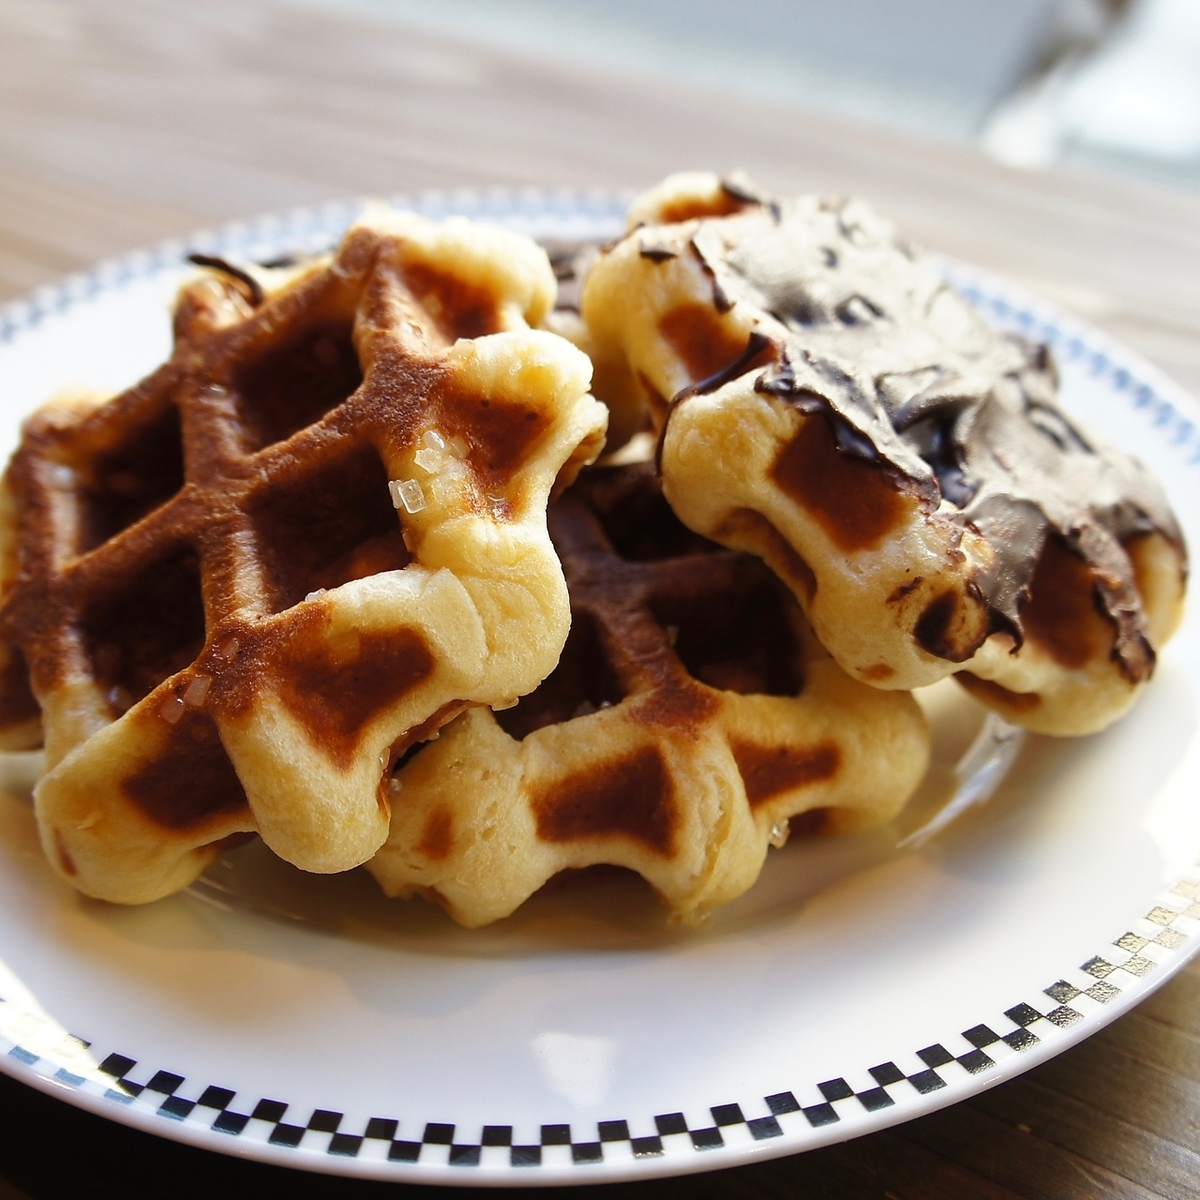 【MINI WAFFLE (Mini waffle)】 You can choose from two types of chocolate or walnut and zarame